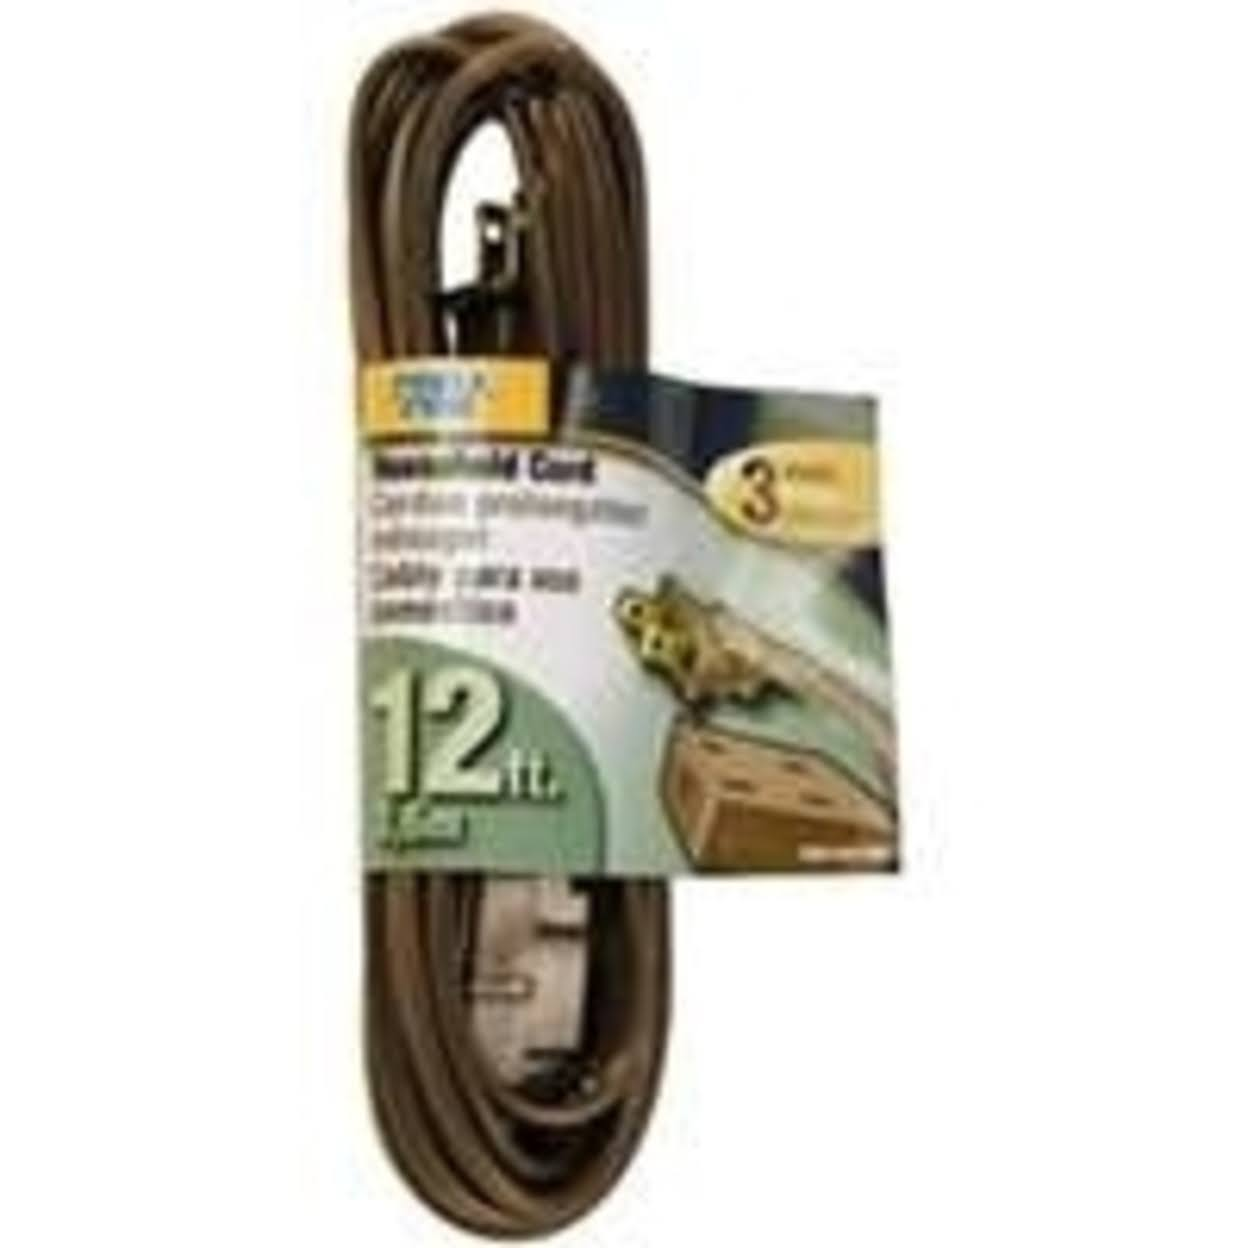 Powerzone OR670612 SPT 2 Extension Cord, 16/2, 12 ft